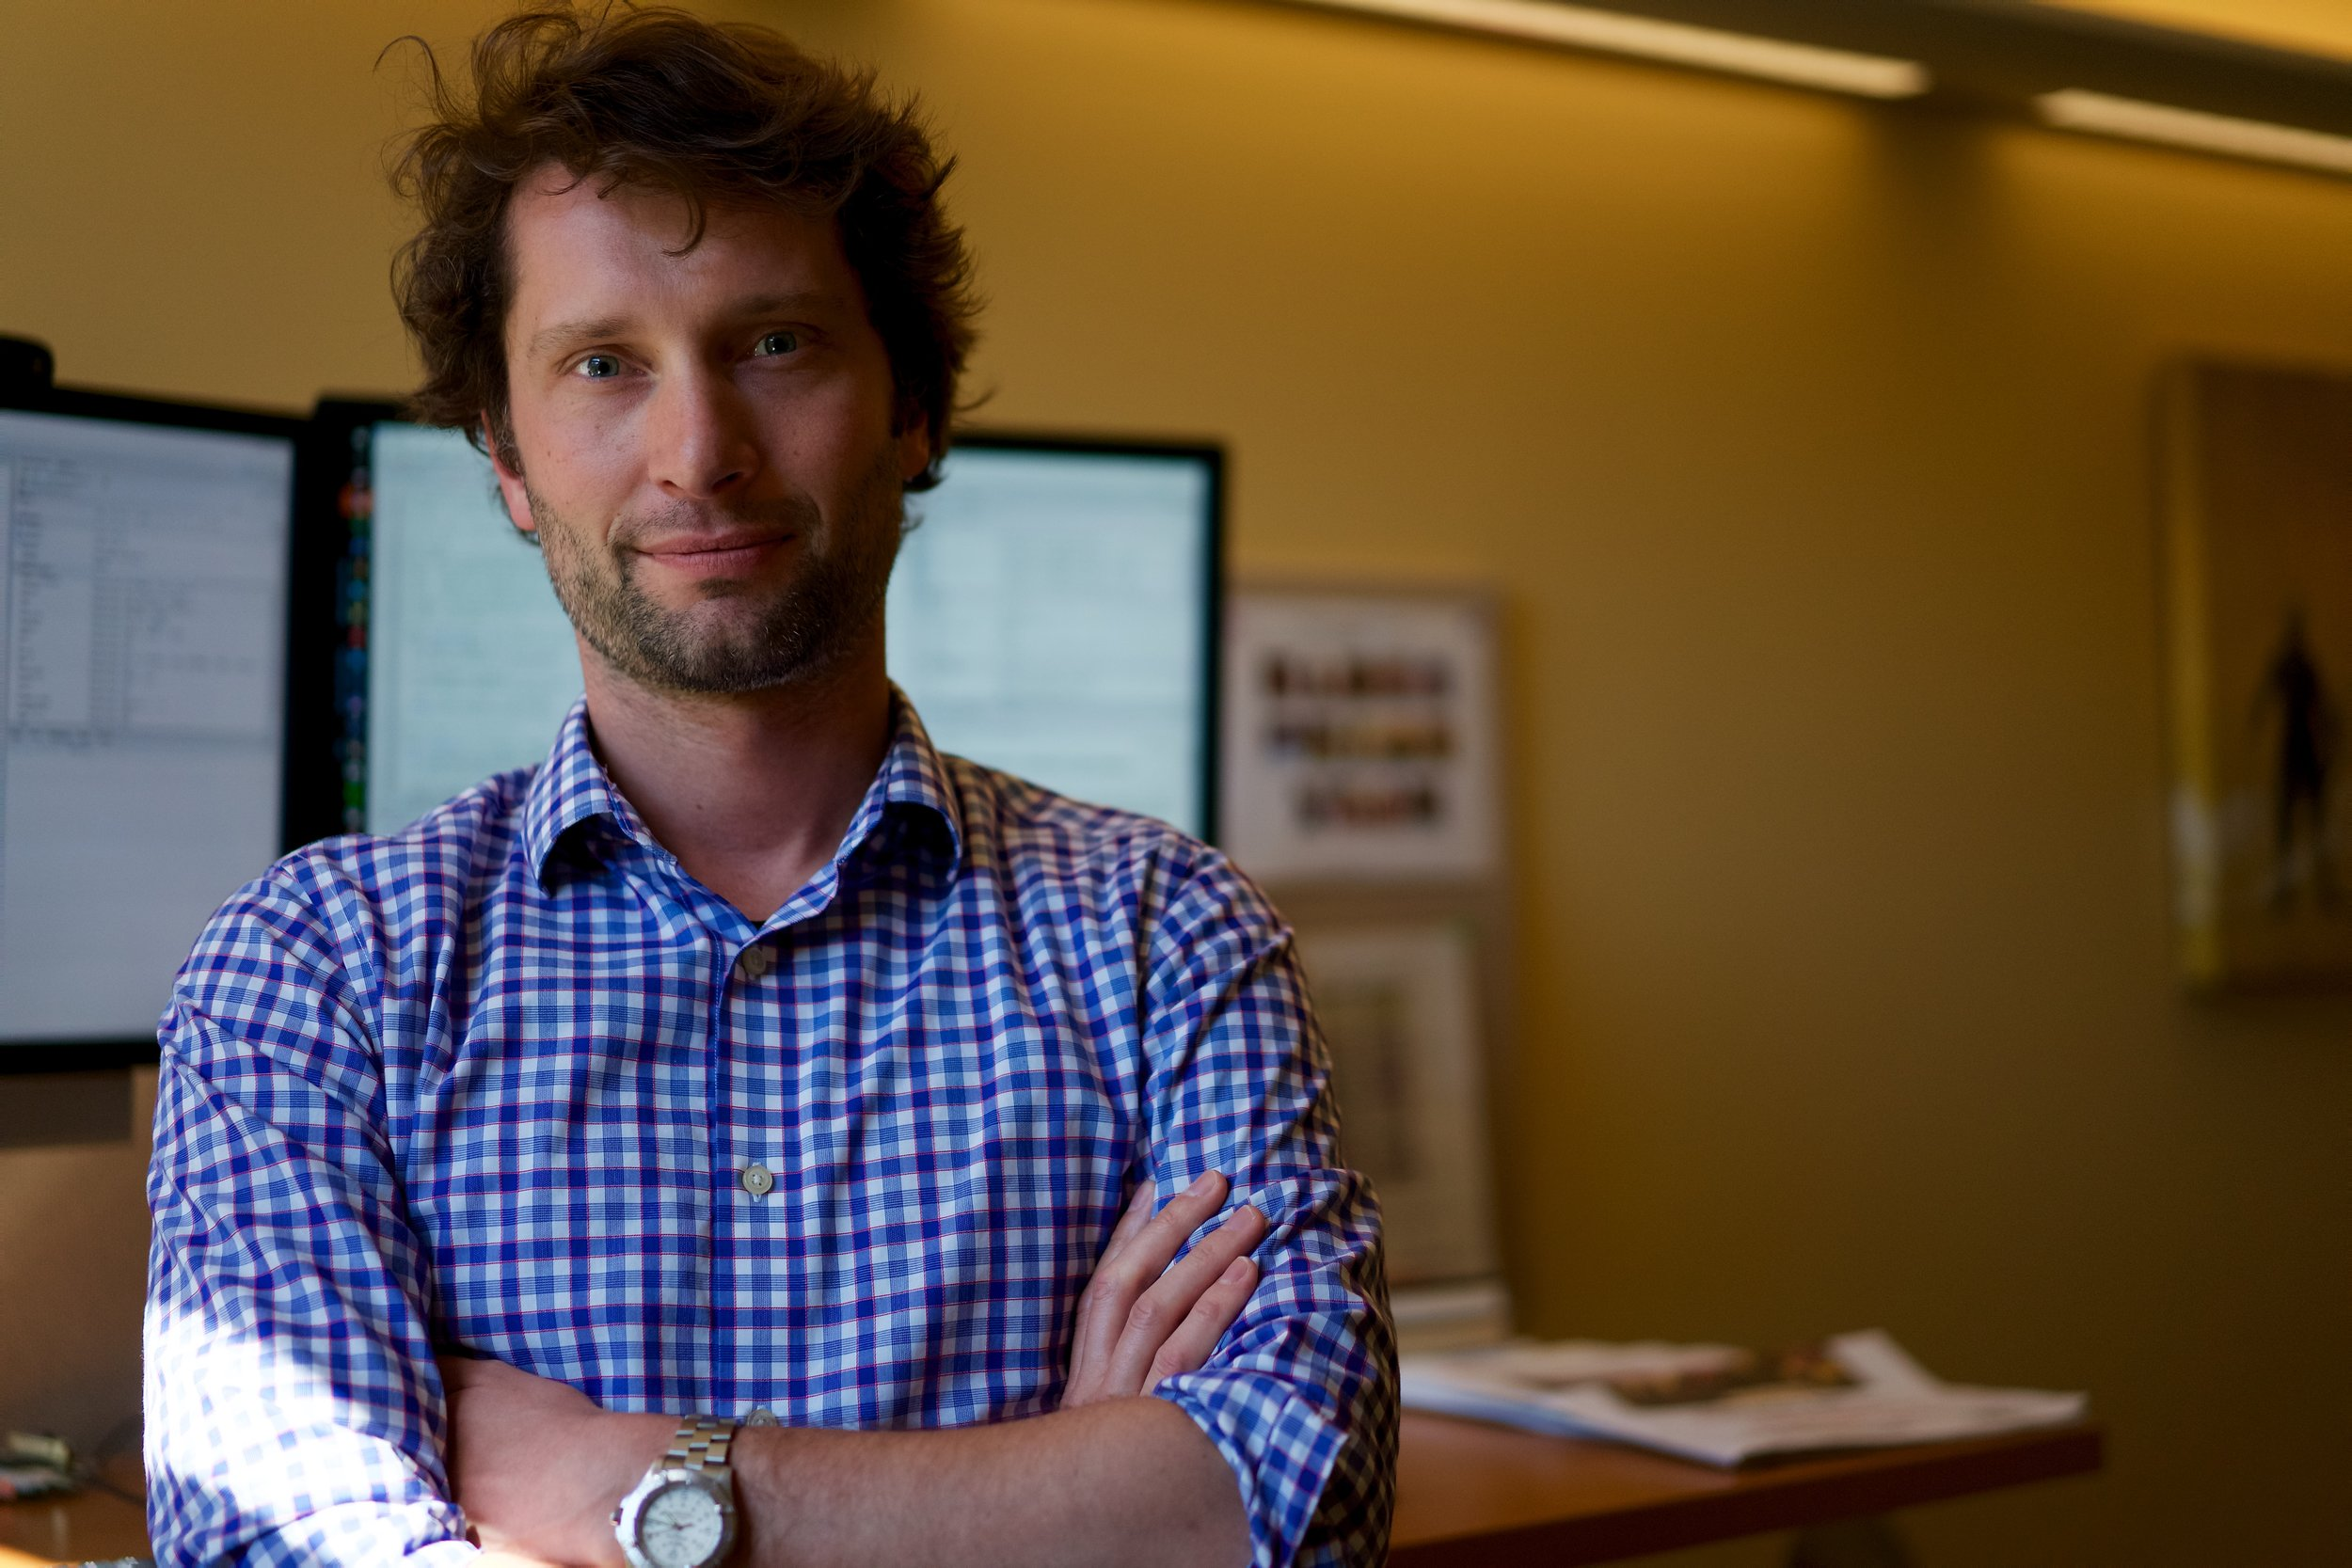 Meet the man behind the technology that knows you better than your